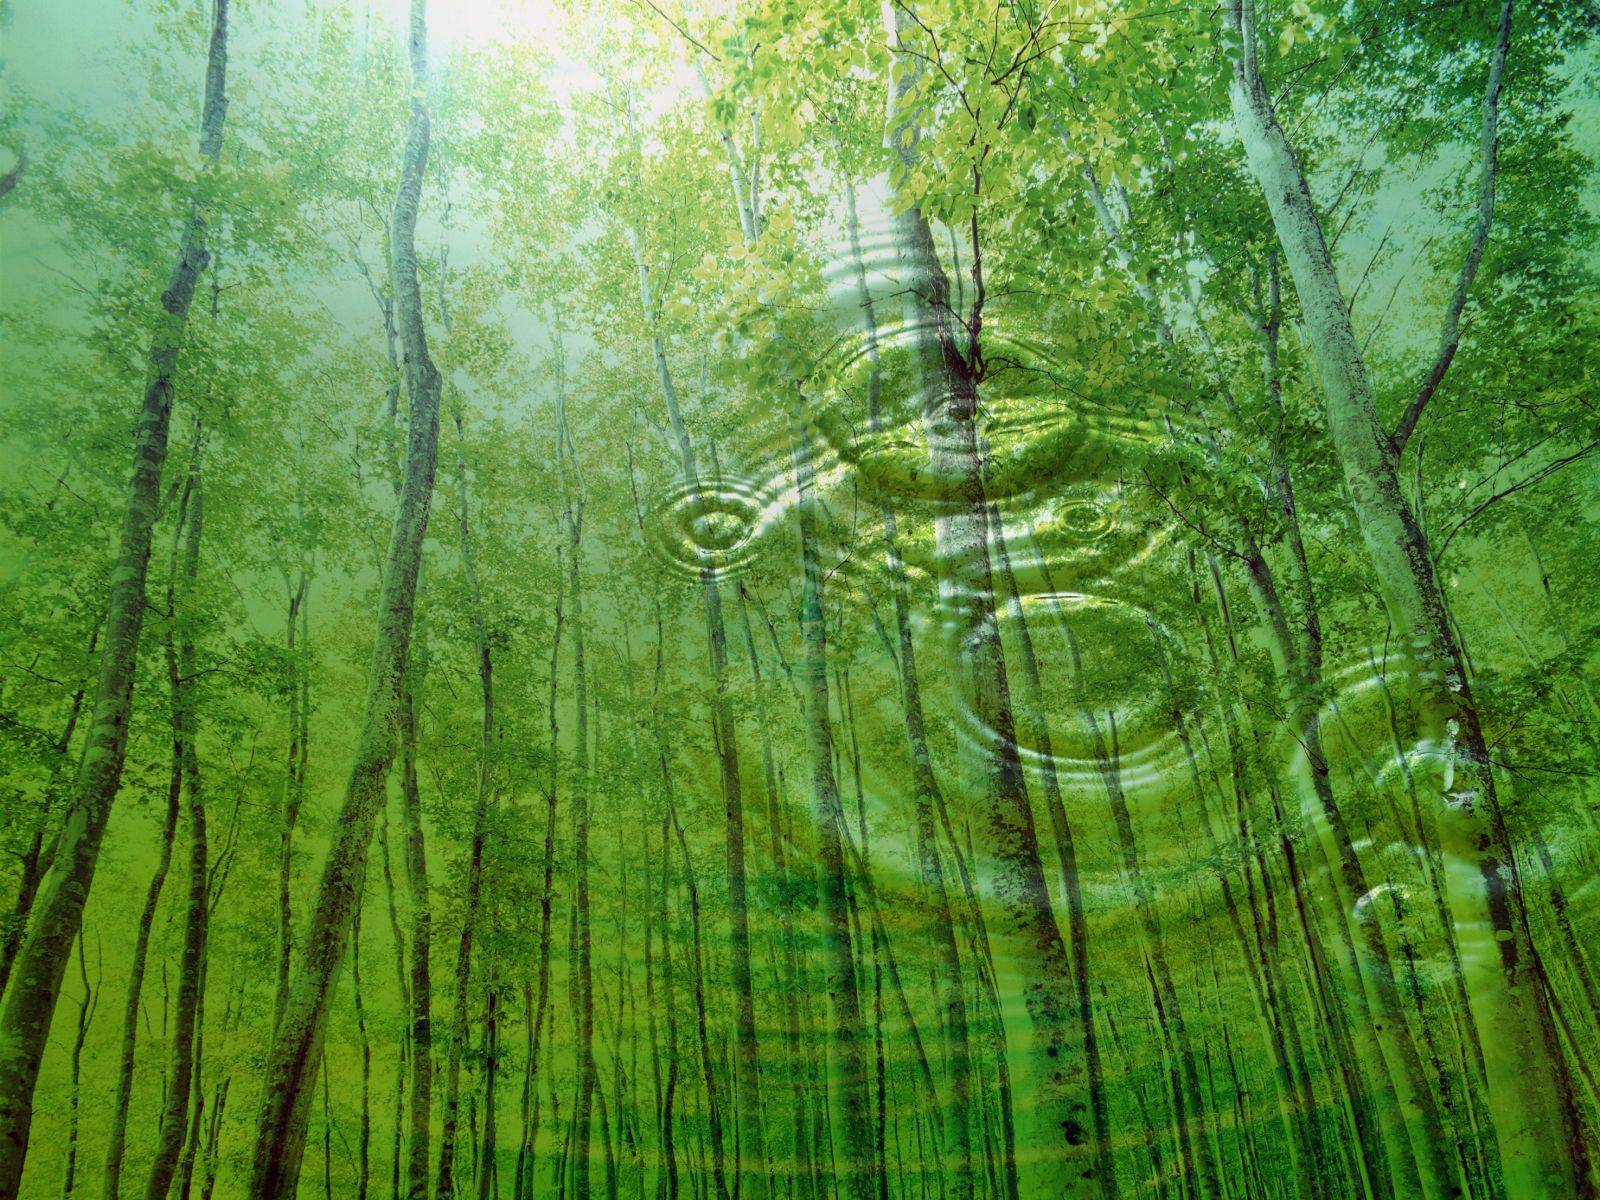 nature of religion Scientific pantheism is a modern form of pantheism that deeply reveres the universe and nature and joyfully accepts and embraces life, the body and earth, but does not believe in any supernatural deities, entities or powers.